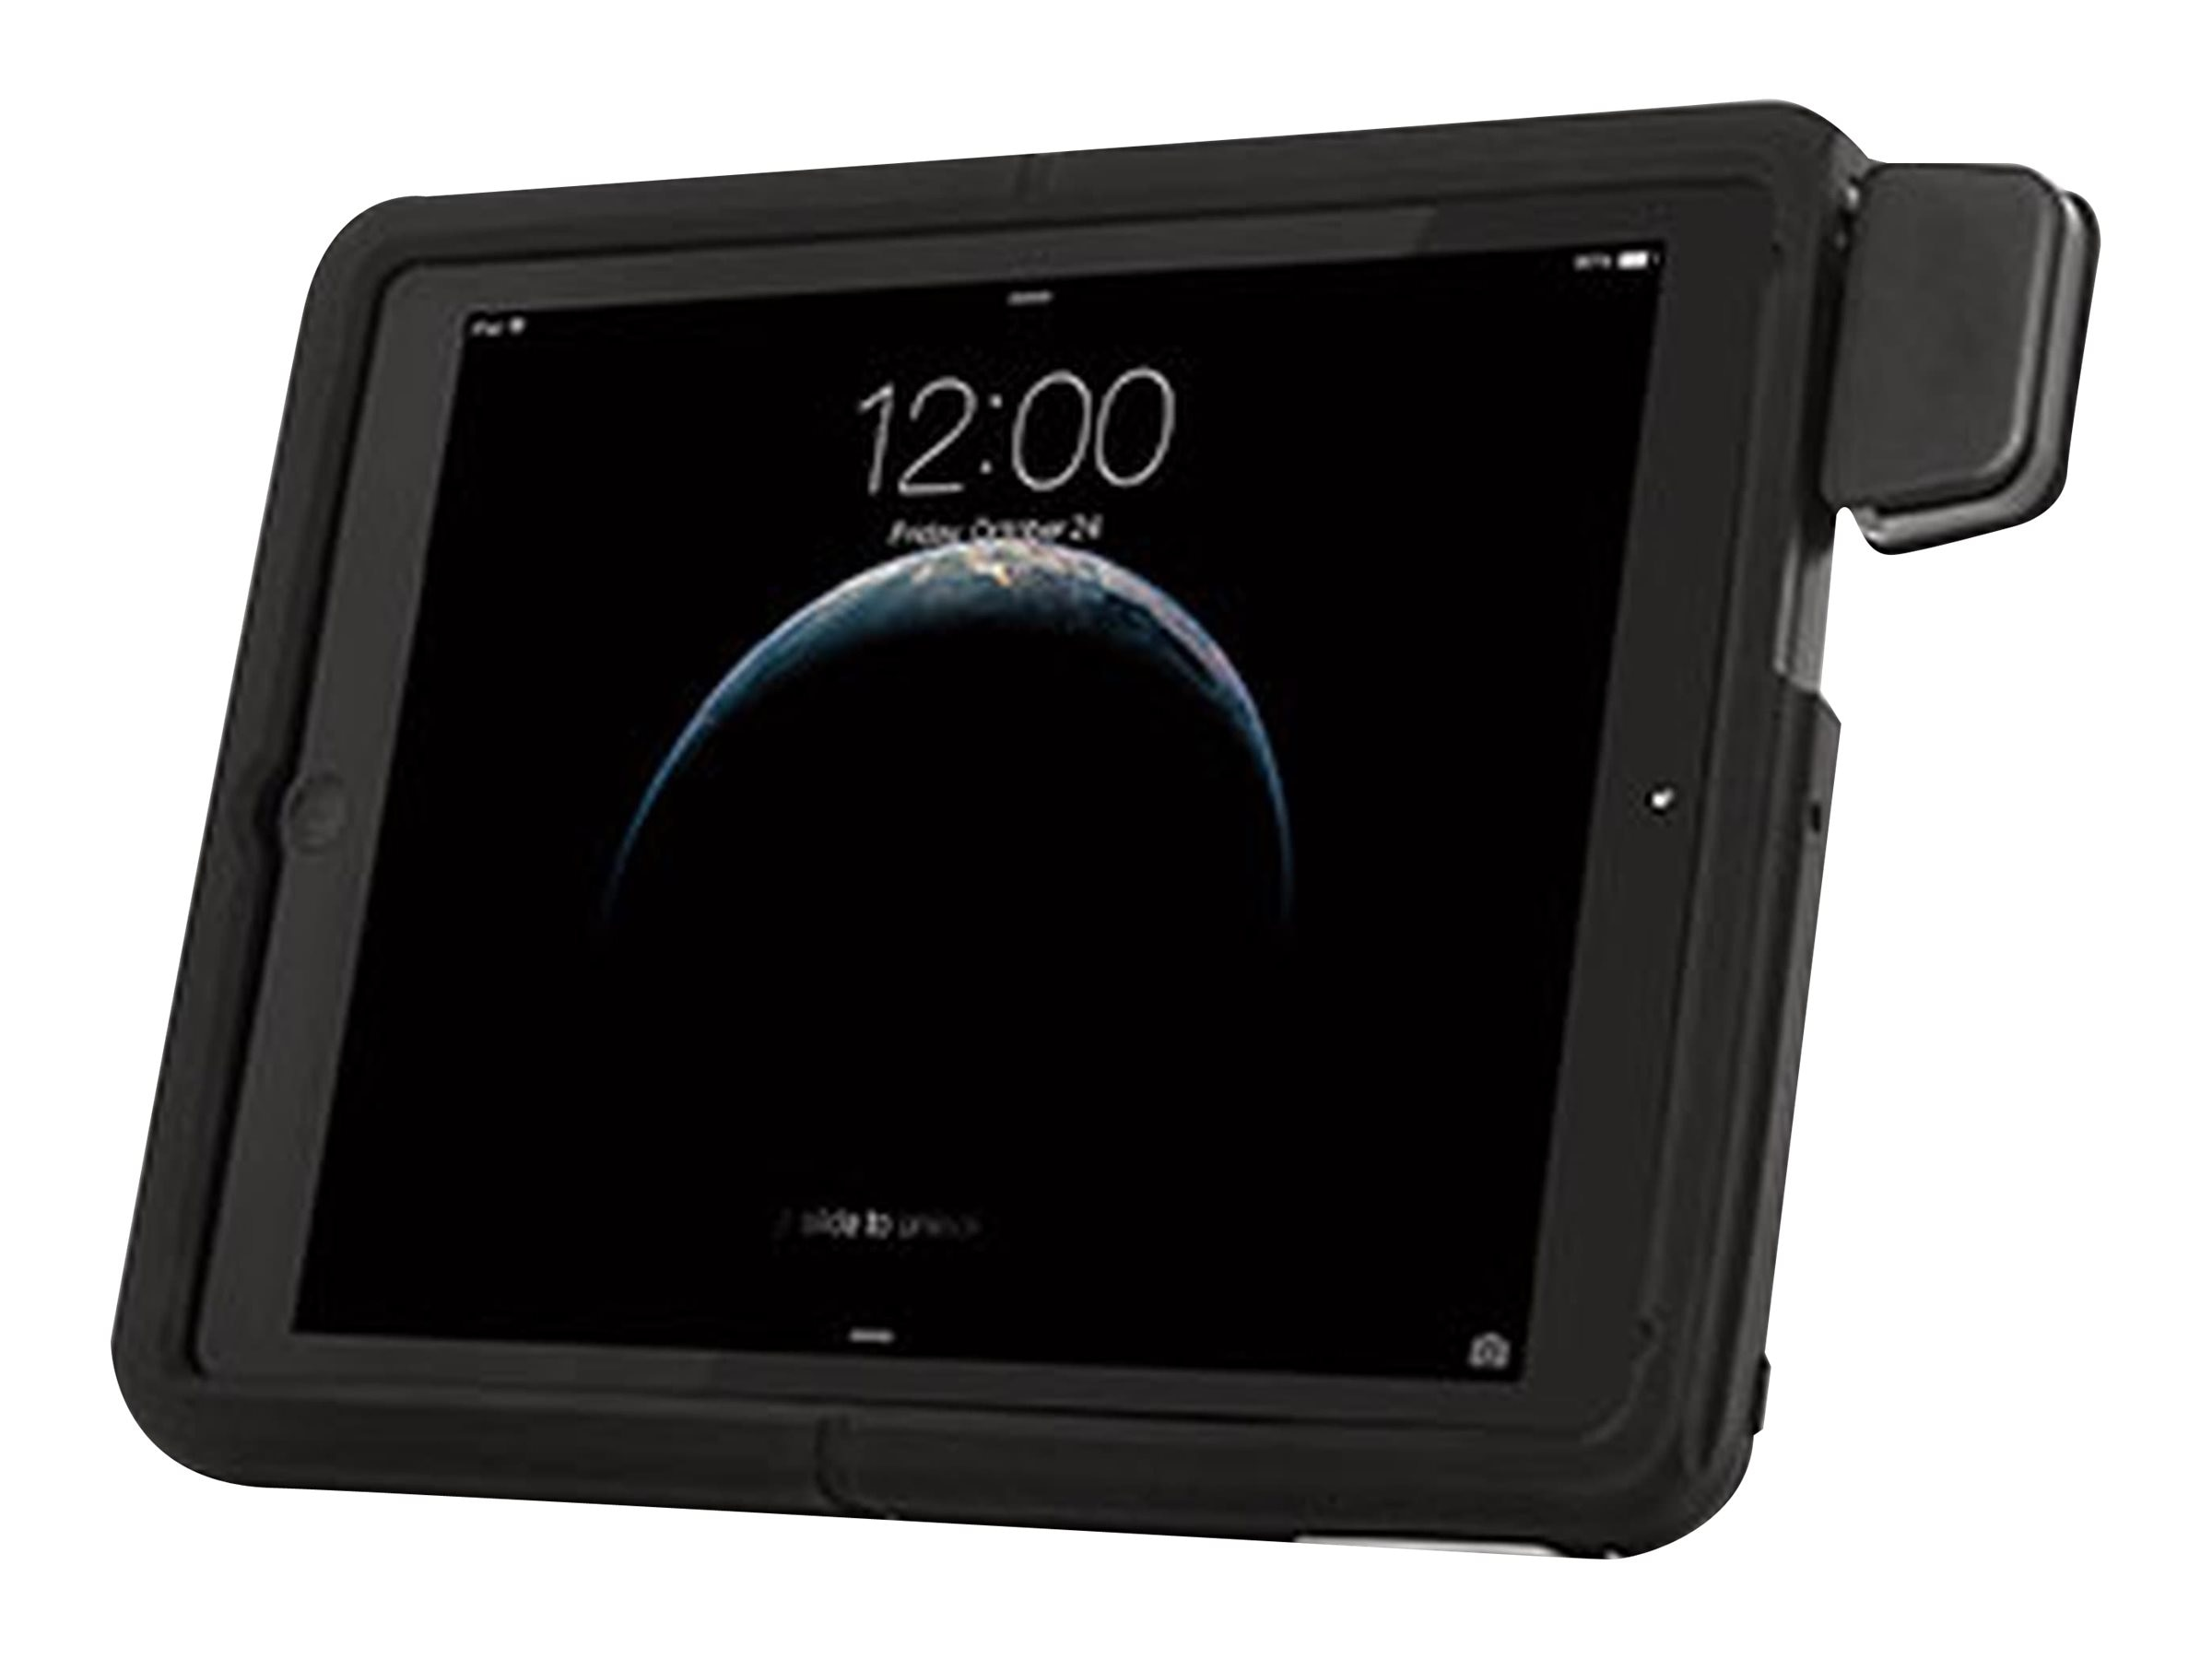 Kensington SecureBack Rugged Carry Case for iPad Air iPad Air 2, Black, K97908WW